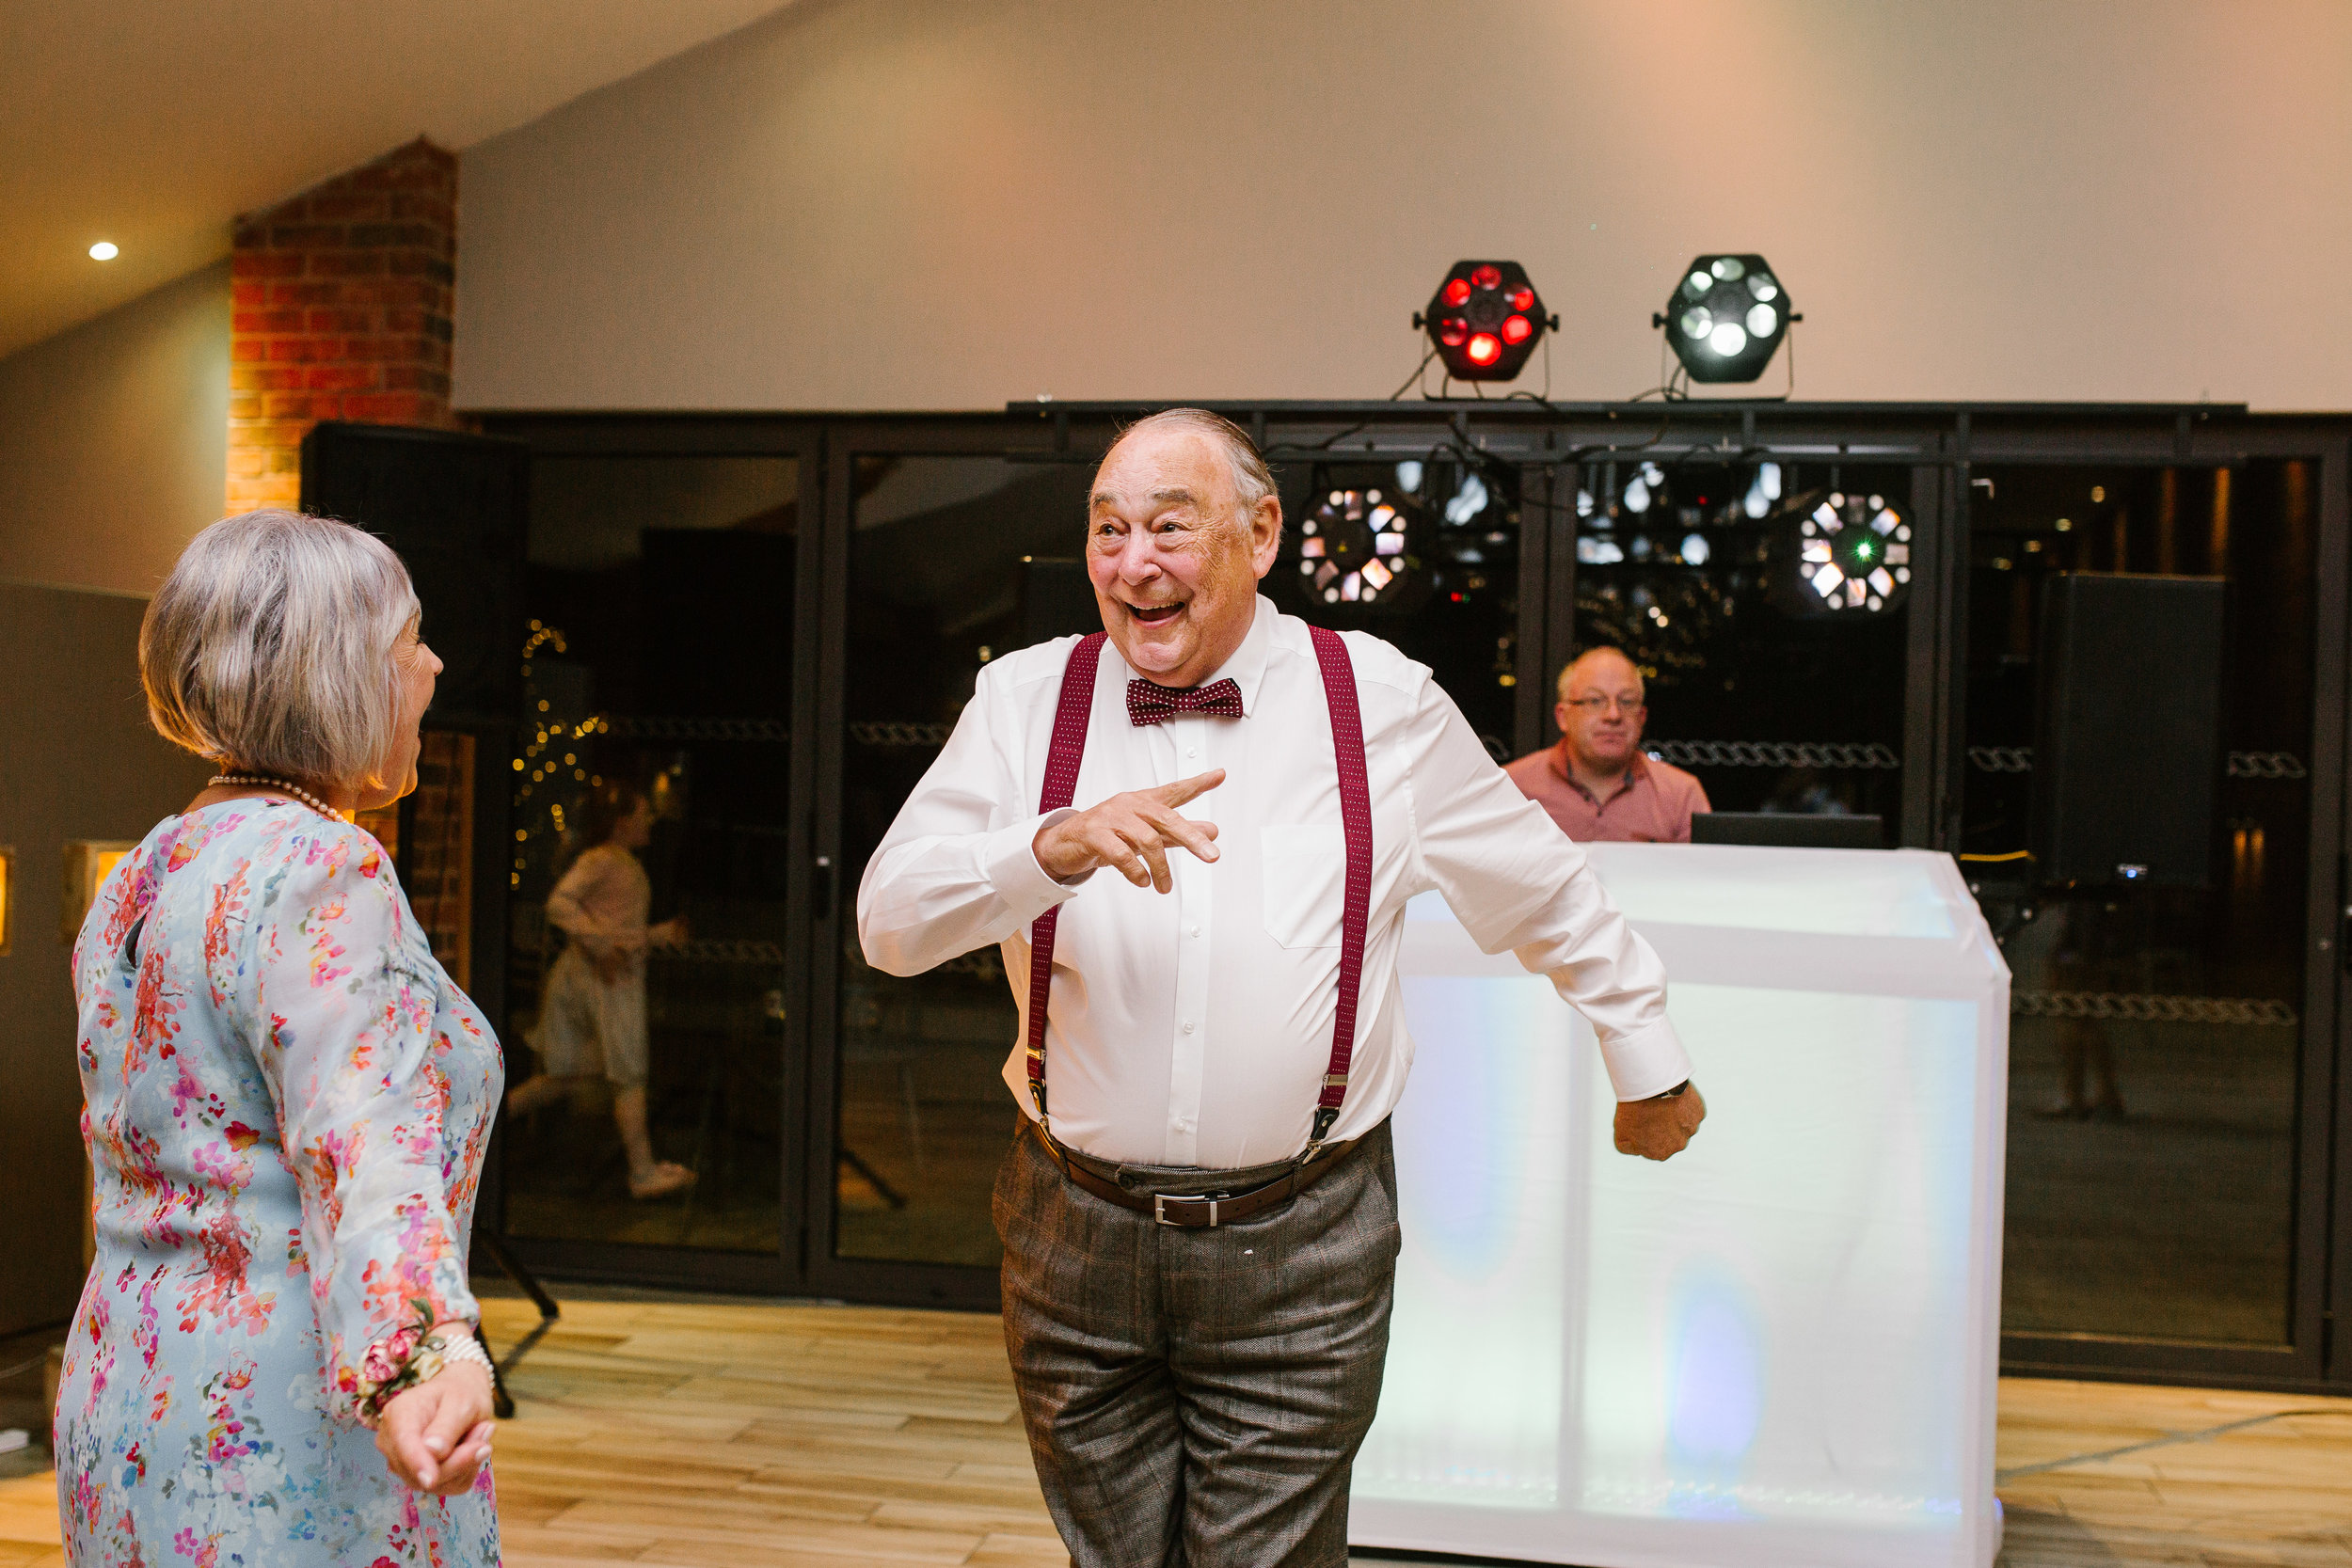 grandad dancing on the dance floor with a huge smile on his face